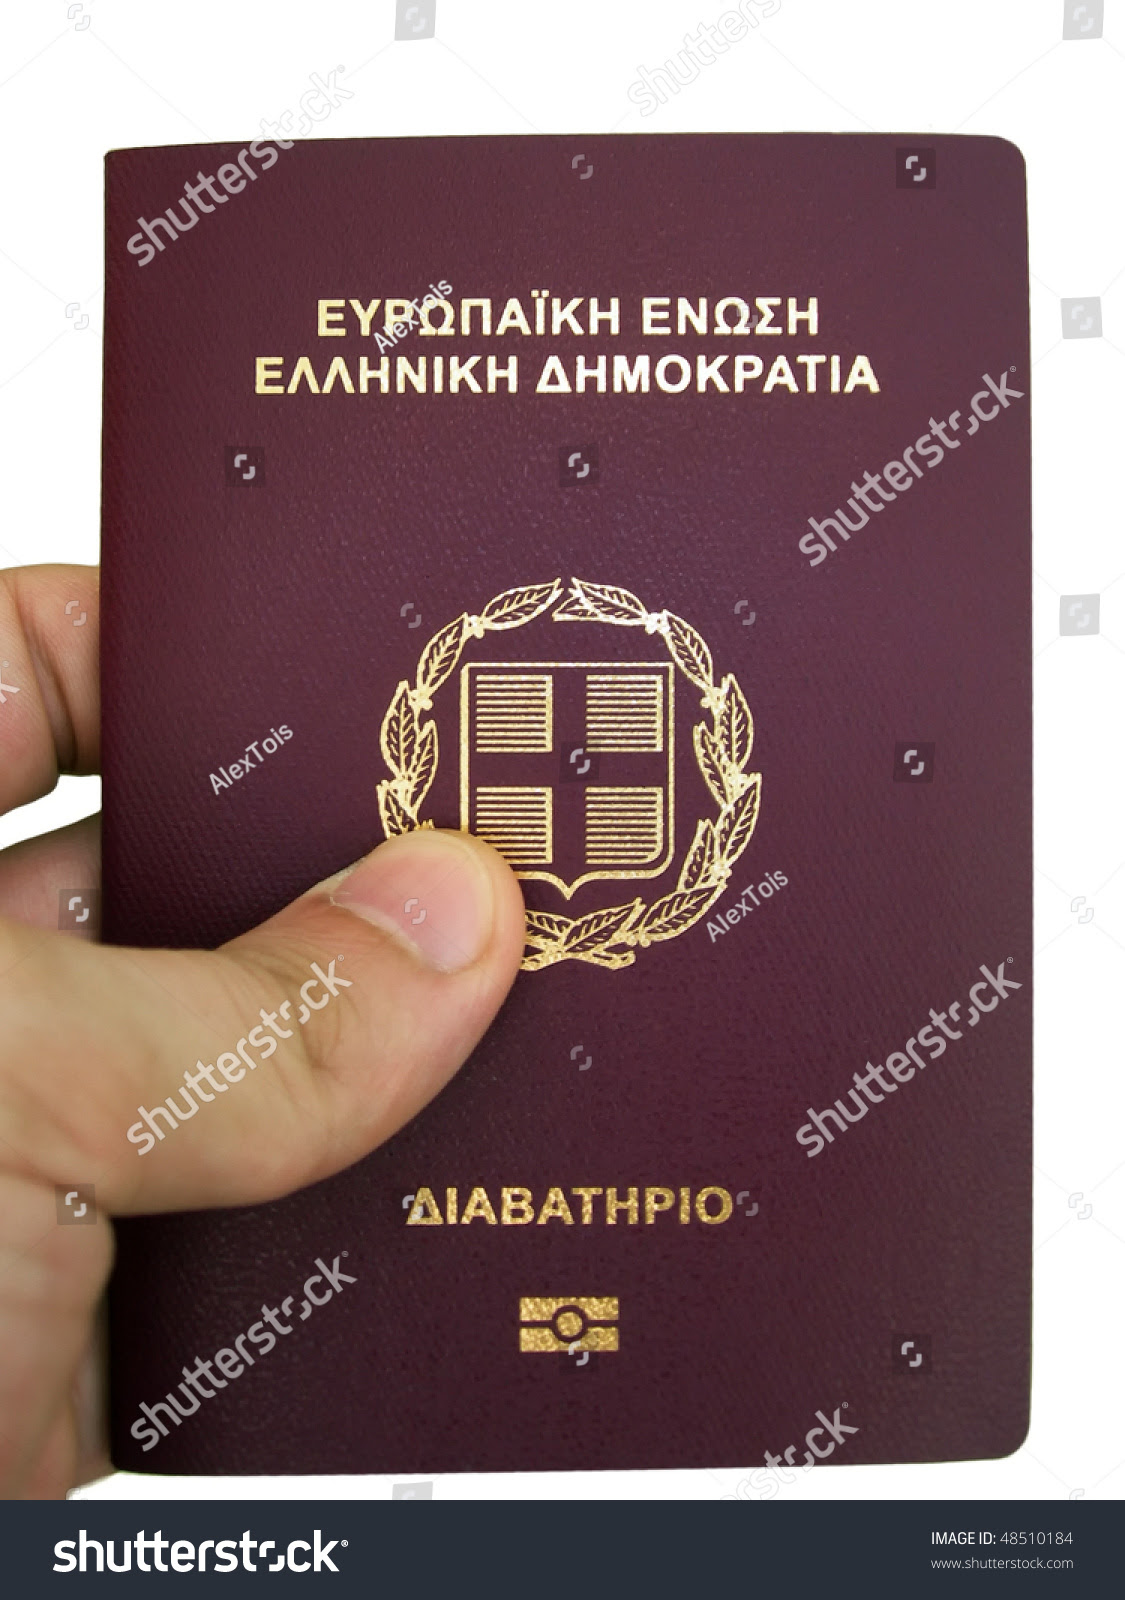 Image result for GREEK PASSPORT